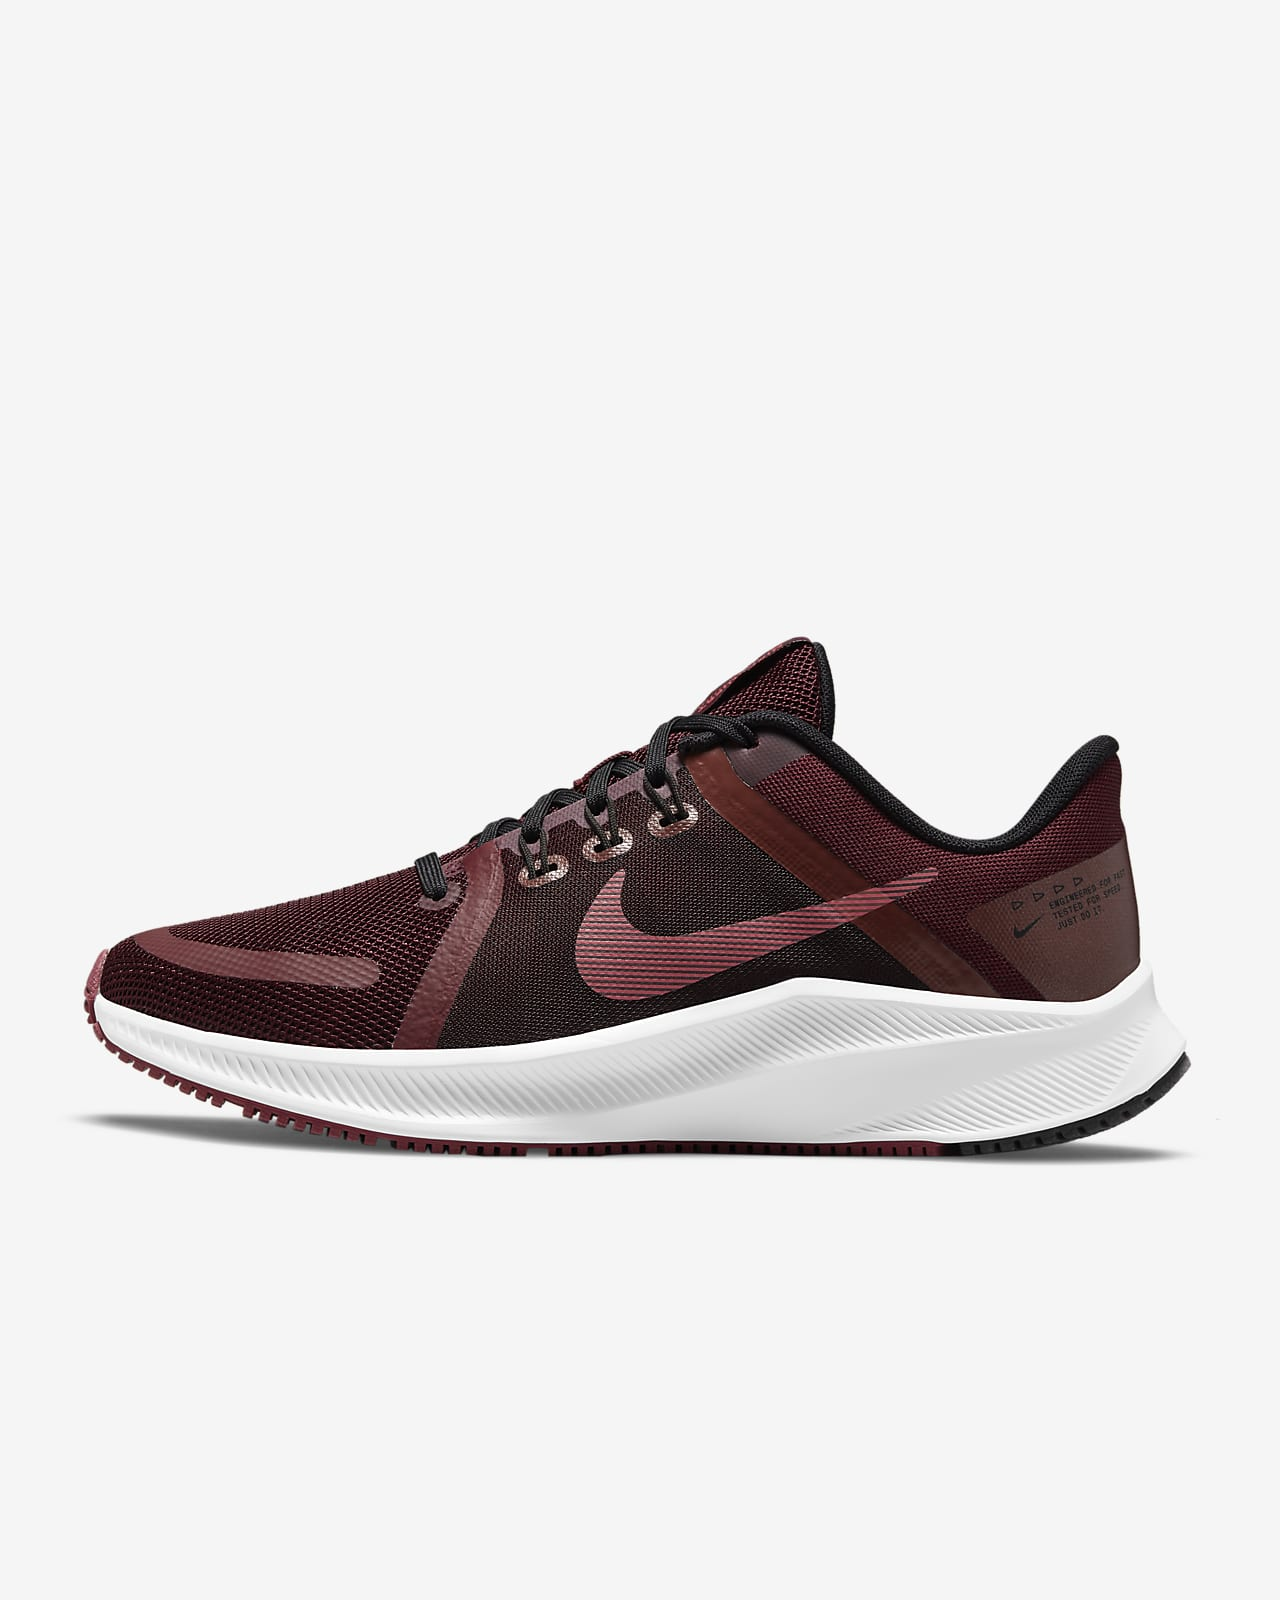 Nike Quest 4 Women's Road Running Shoes